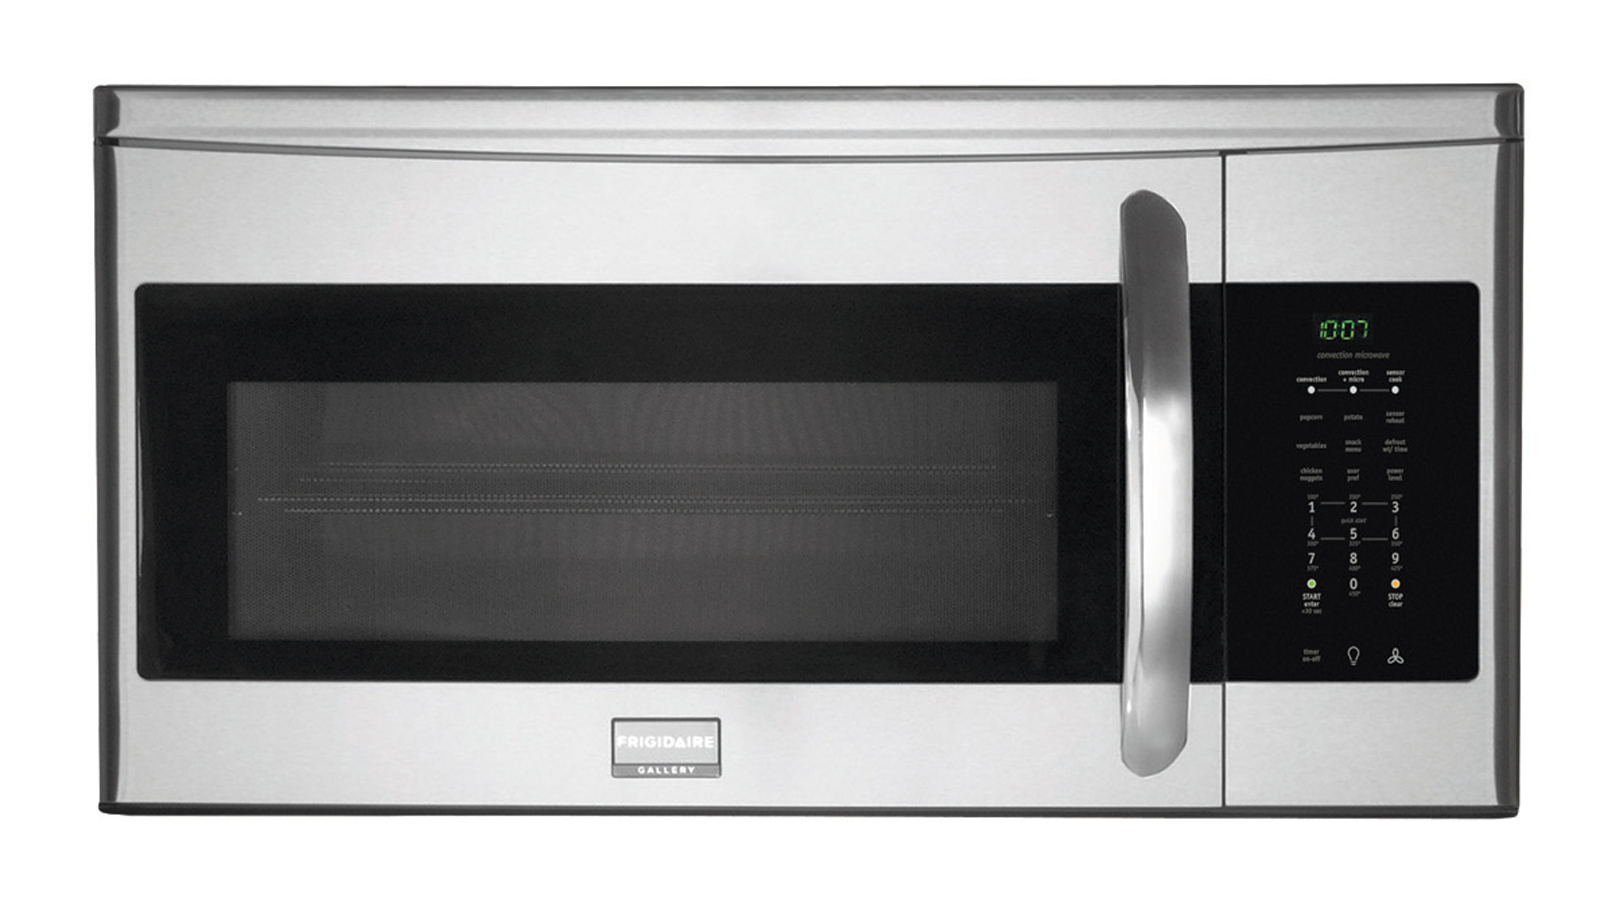 Frigidaire Gallery 1.5 cu. ft. Over-the-Range Microwave w/ Convection - Stainless Steel